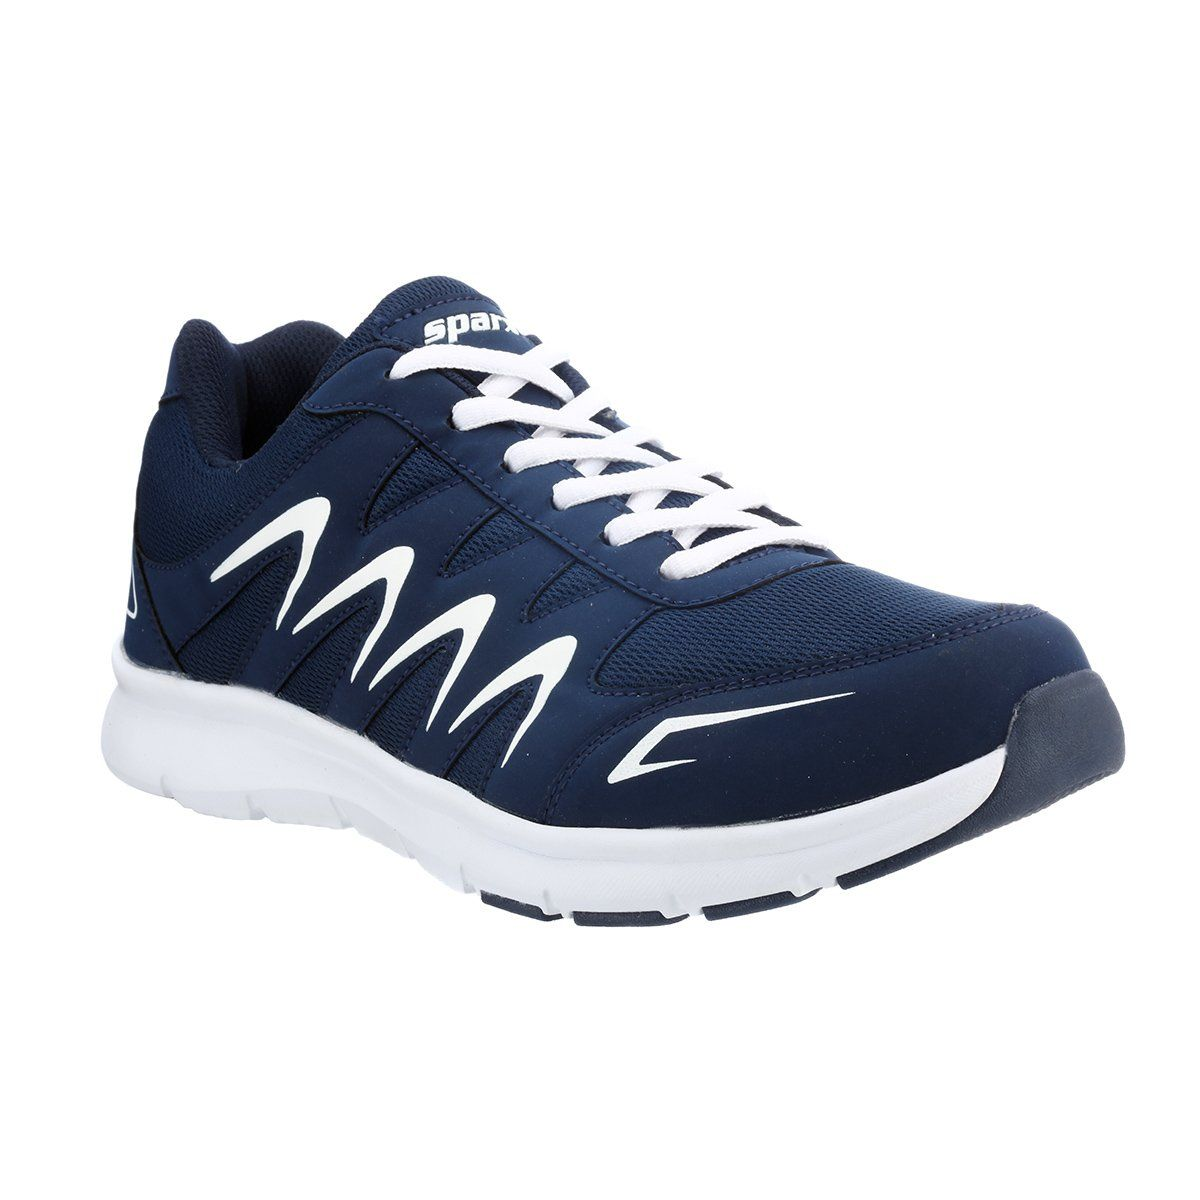 Running Shoes-Sparx Men's Running Shoes